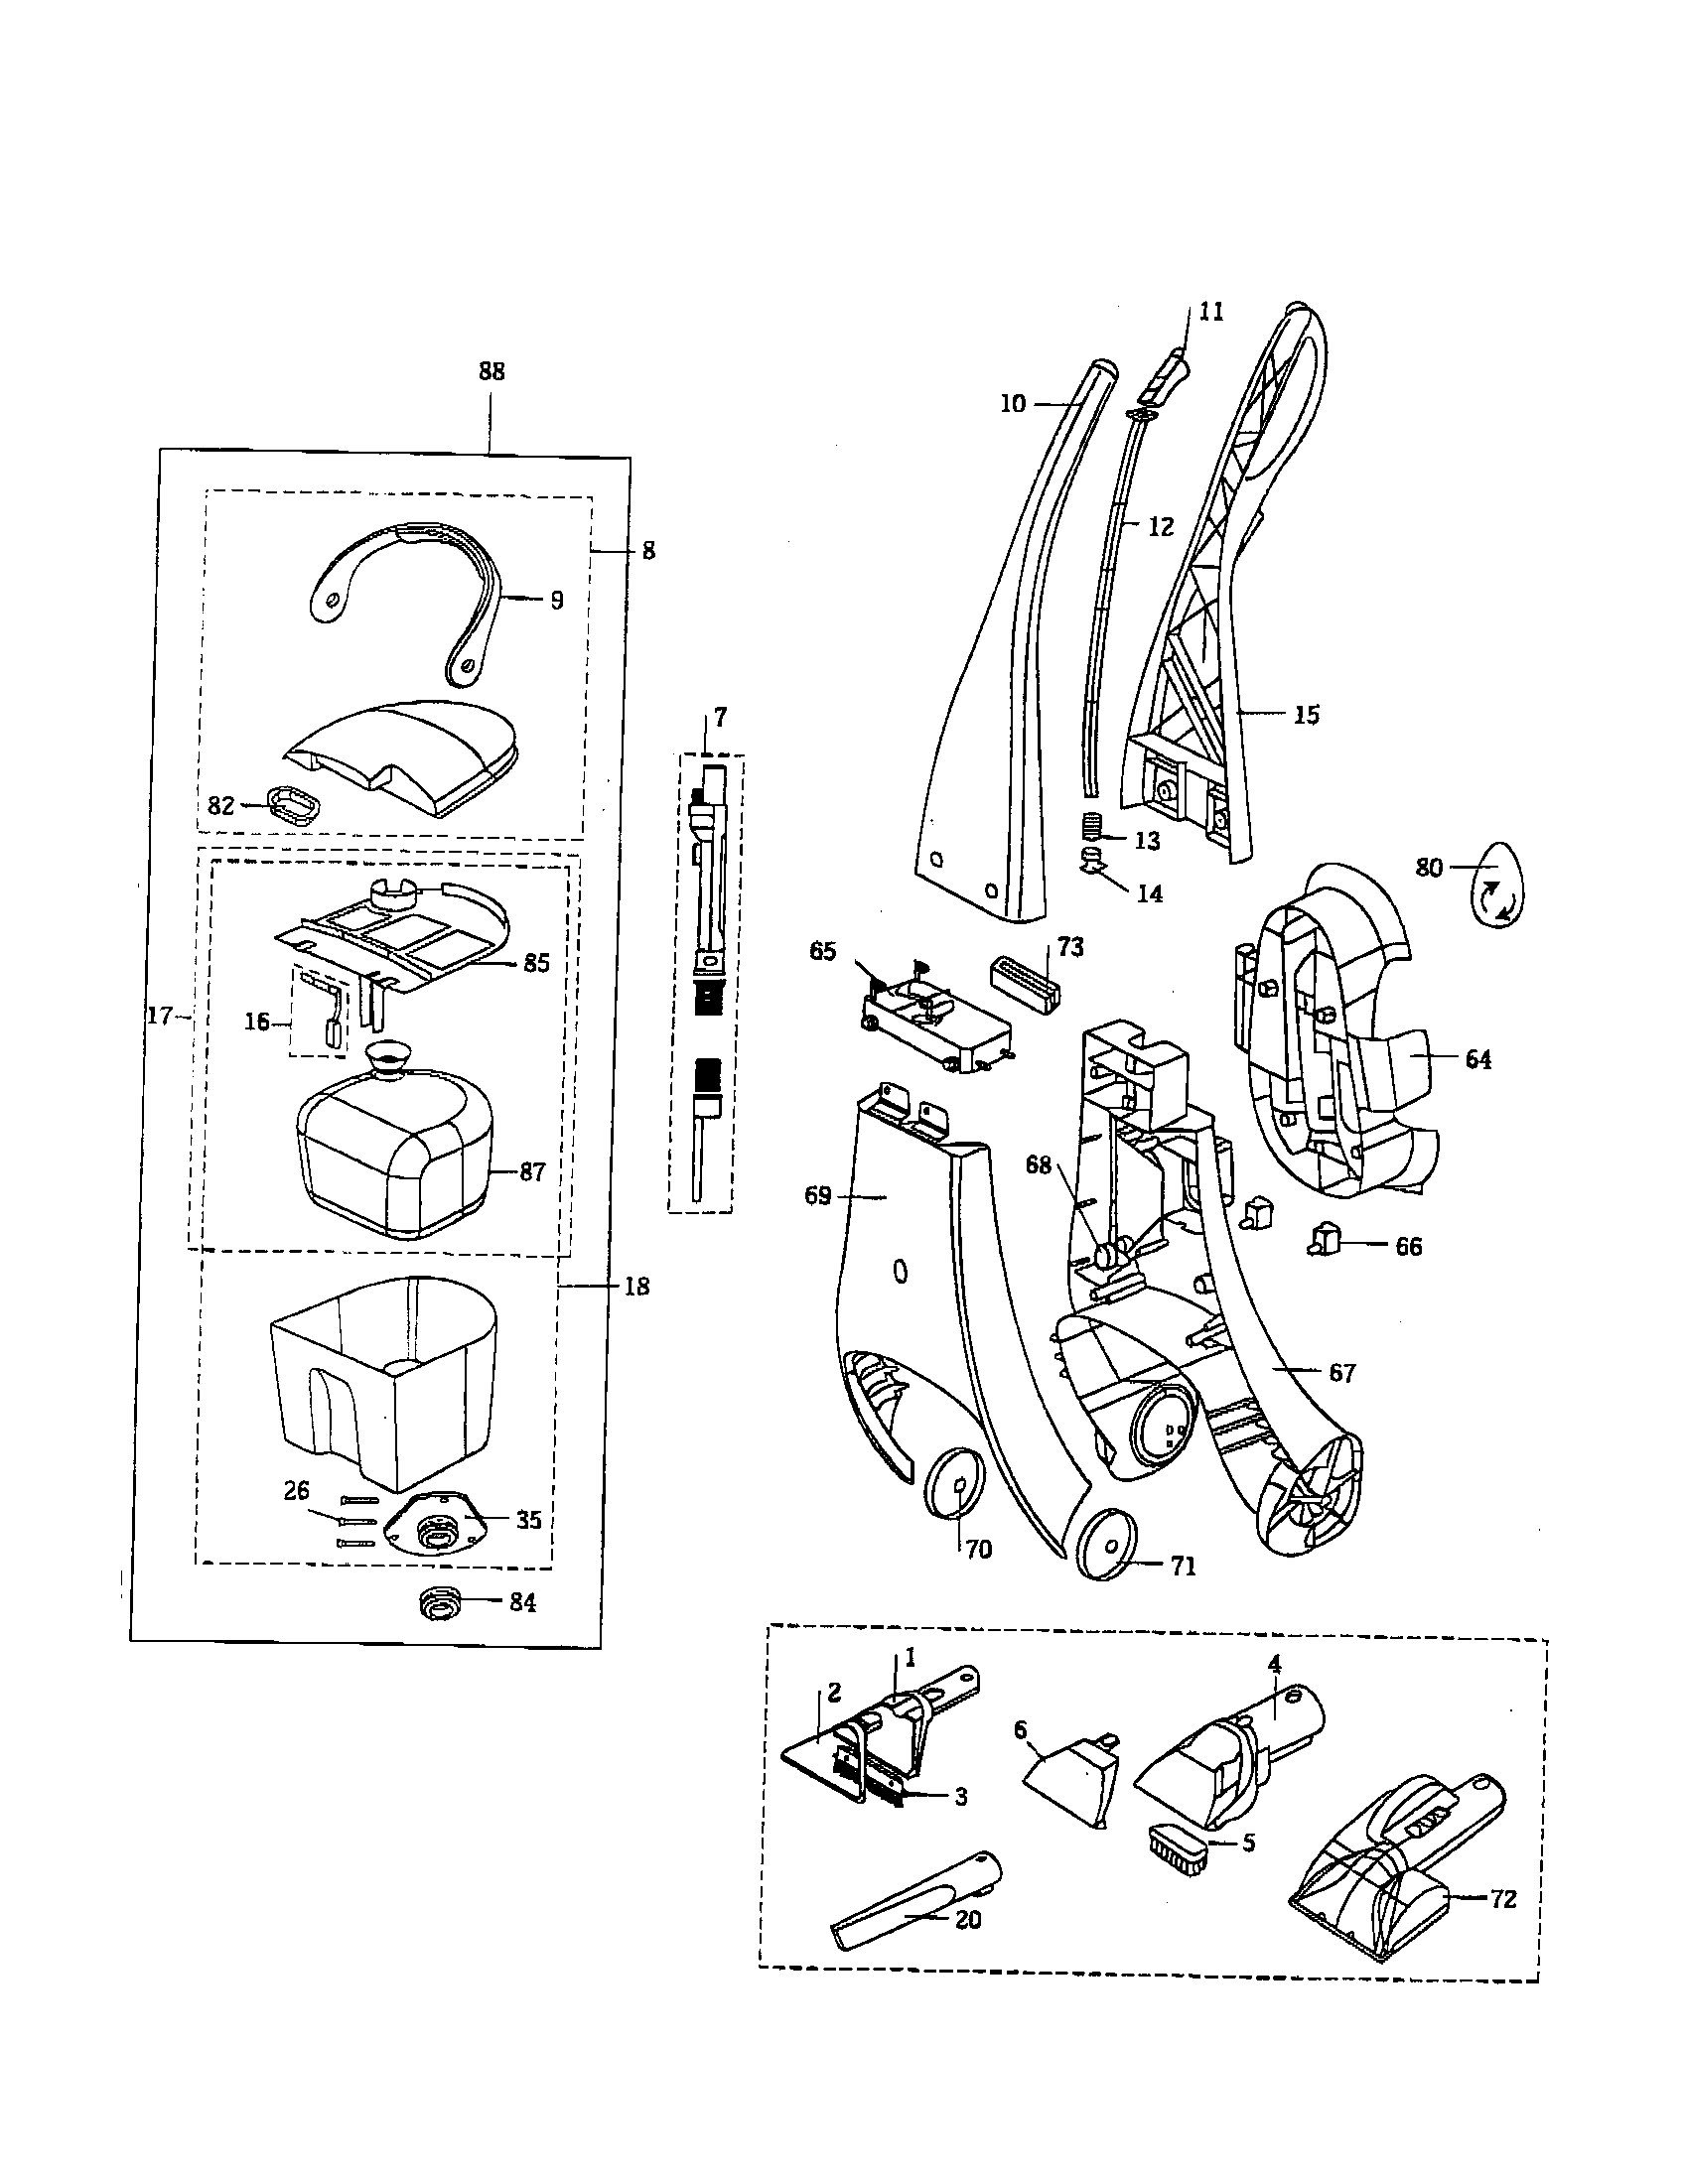 HANDLE ASSEMBLY Diagram & Parts List for Model 16991